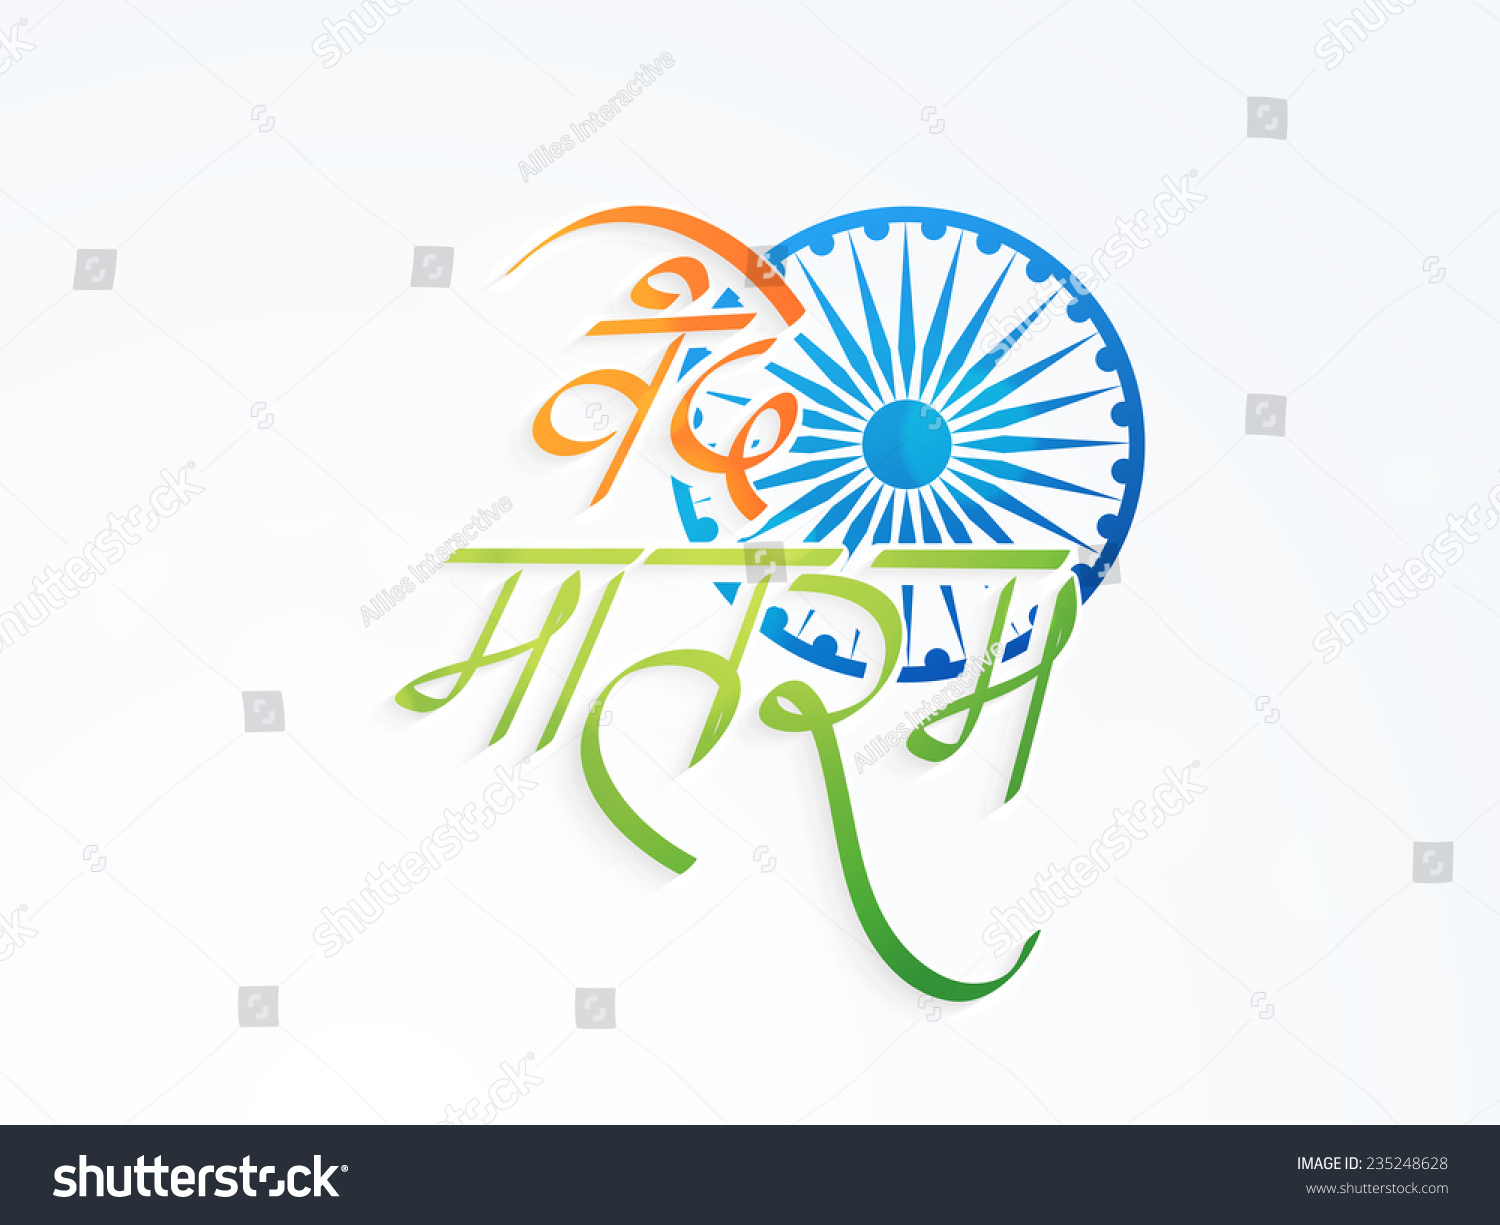 Colors website ashoka - Hindi Text Vande Mataram I Praise Thee Mother In National Flag Colors With